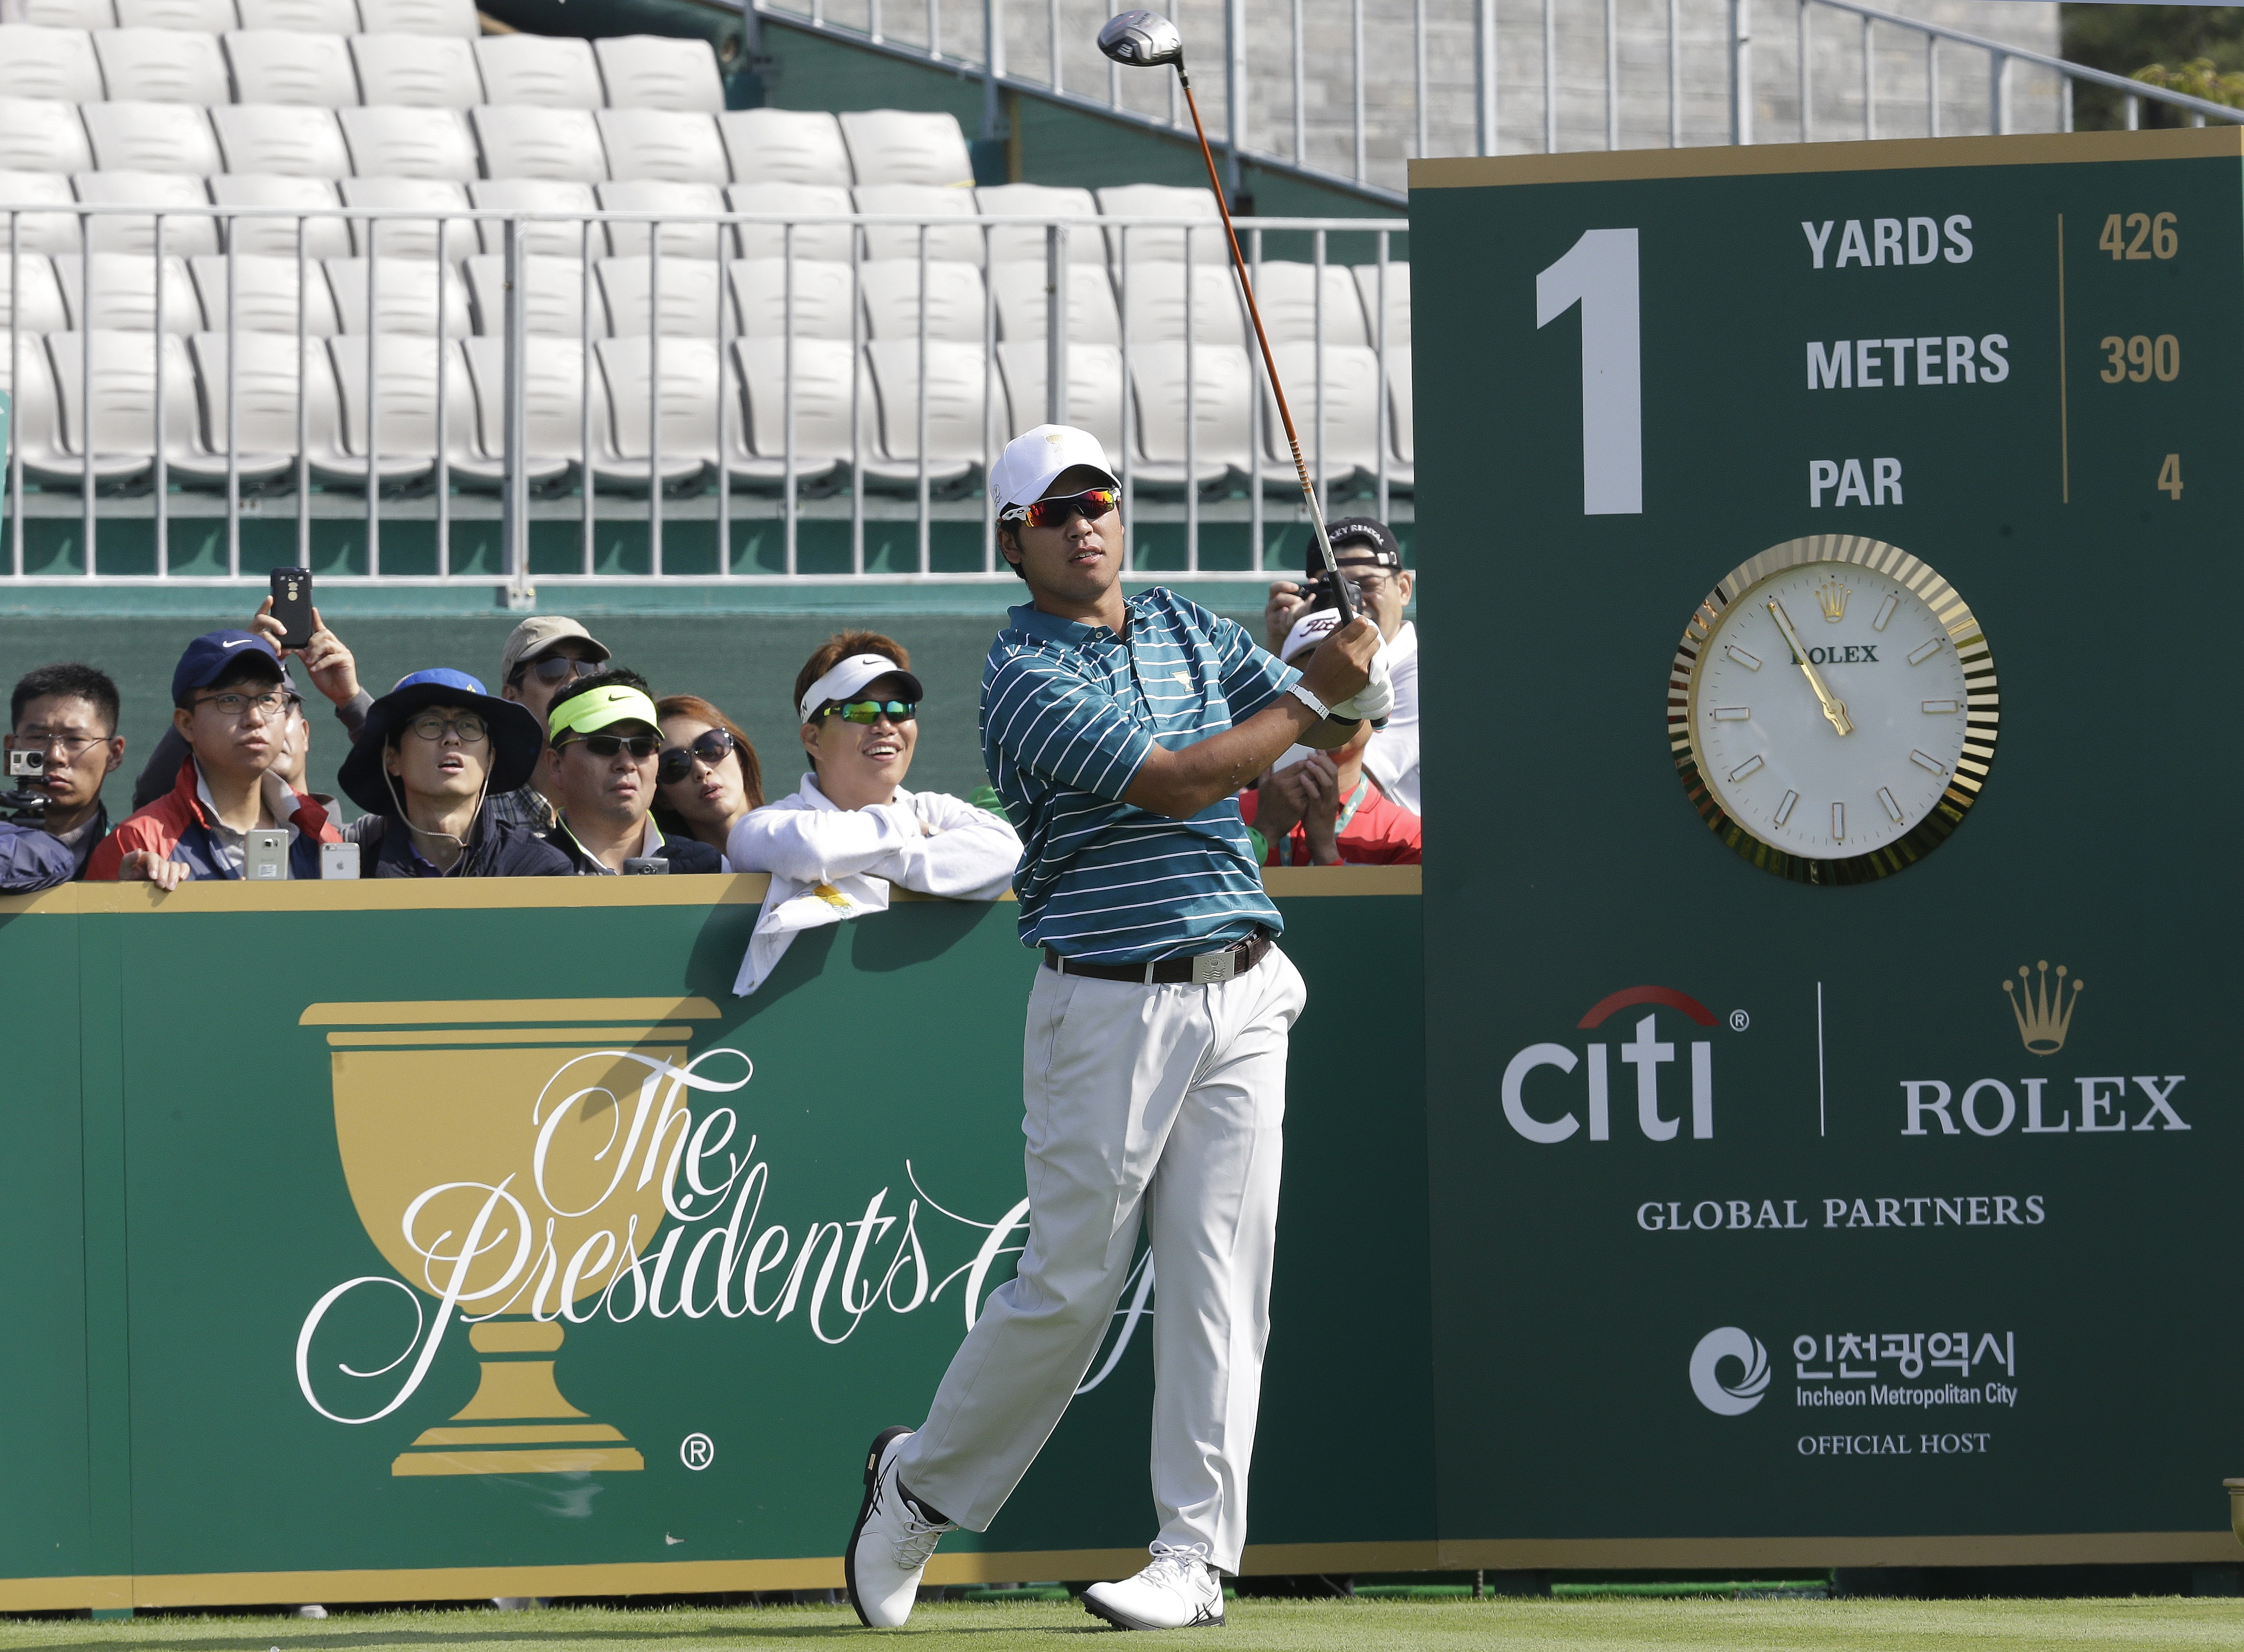 International team player Hideki Matsuyama watches his tee shot on the first hole during a practice round for the Presidents Cup golf tournament at Jack Nicklaus Golf Club Korea in Incheon, South Korea, Tuesday, Oct. 6, 2015. (AP Photo/Ahn